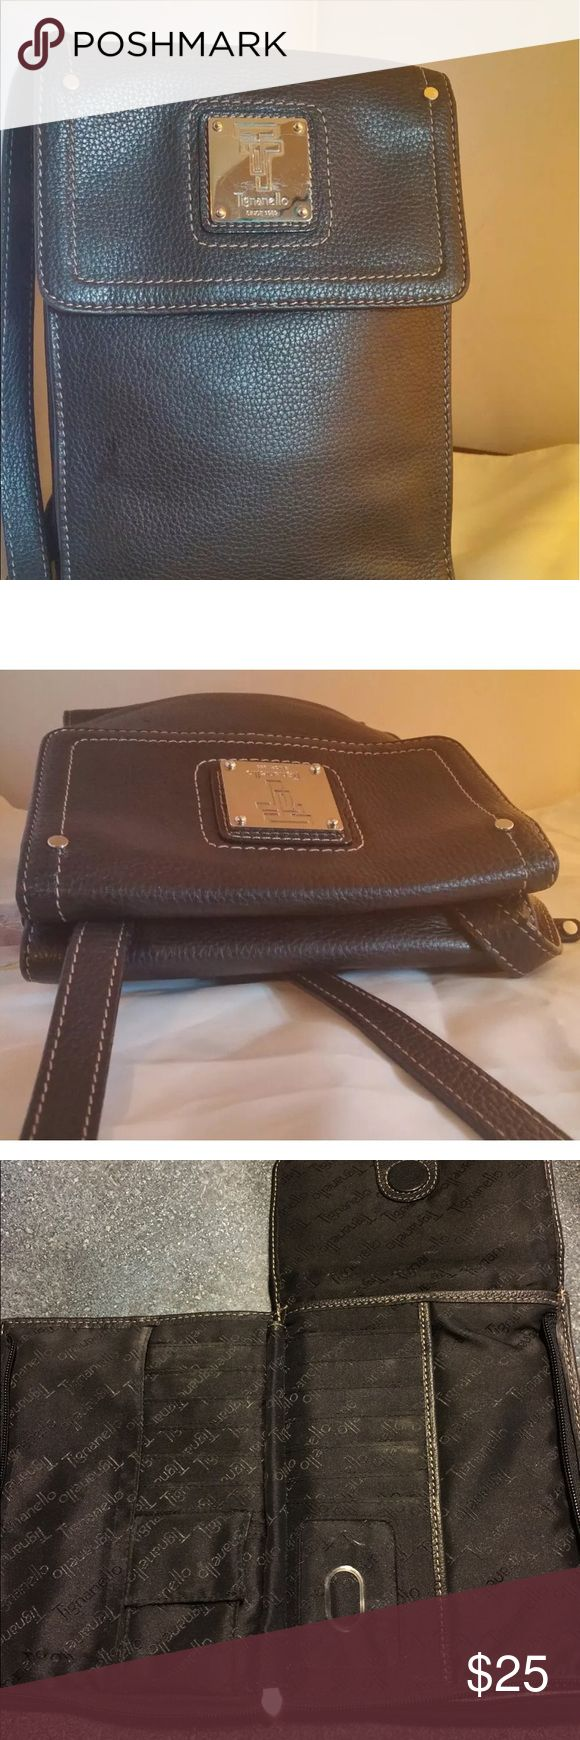 Tignanello purse CROSSBODY ORGANIZER HANDBAG BY TIGNANELLO. CRAFTED OF GENUINE TOPGRAIN PEBBLE LEATHER IN BLACK WITH LIGHT STITCHING. TIGNANELLO ENGRAVED FRONT NAMEPLATE AND ENGRAVED ZIPPER PULL IN SILVER HARDWARE. LONG ADJUSTABLE CROSSBODY STRAP. HIDDEN MAGNETIC OPEN FRONT COMPARTMENT TO PAISLEY PRINT ACCESSORIES POCKET AND BACK WALL ZIPPER COMPARTMENT. MAGNETIC FLAP AND ZIP AROUND OPEN FLAT ORGANIZER TO TIGNANELLO SIGNATURE LINING, ID HOLDER, 12 CARD SLOTS, 2 SLIPS FOR CASH OR CHECKS. SNAP…